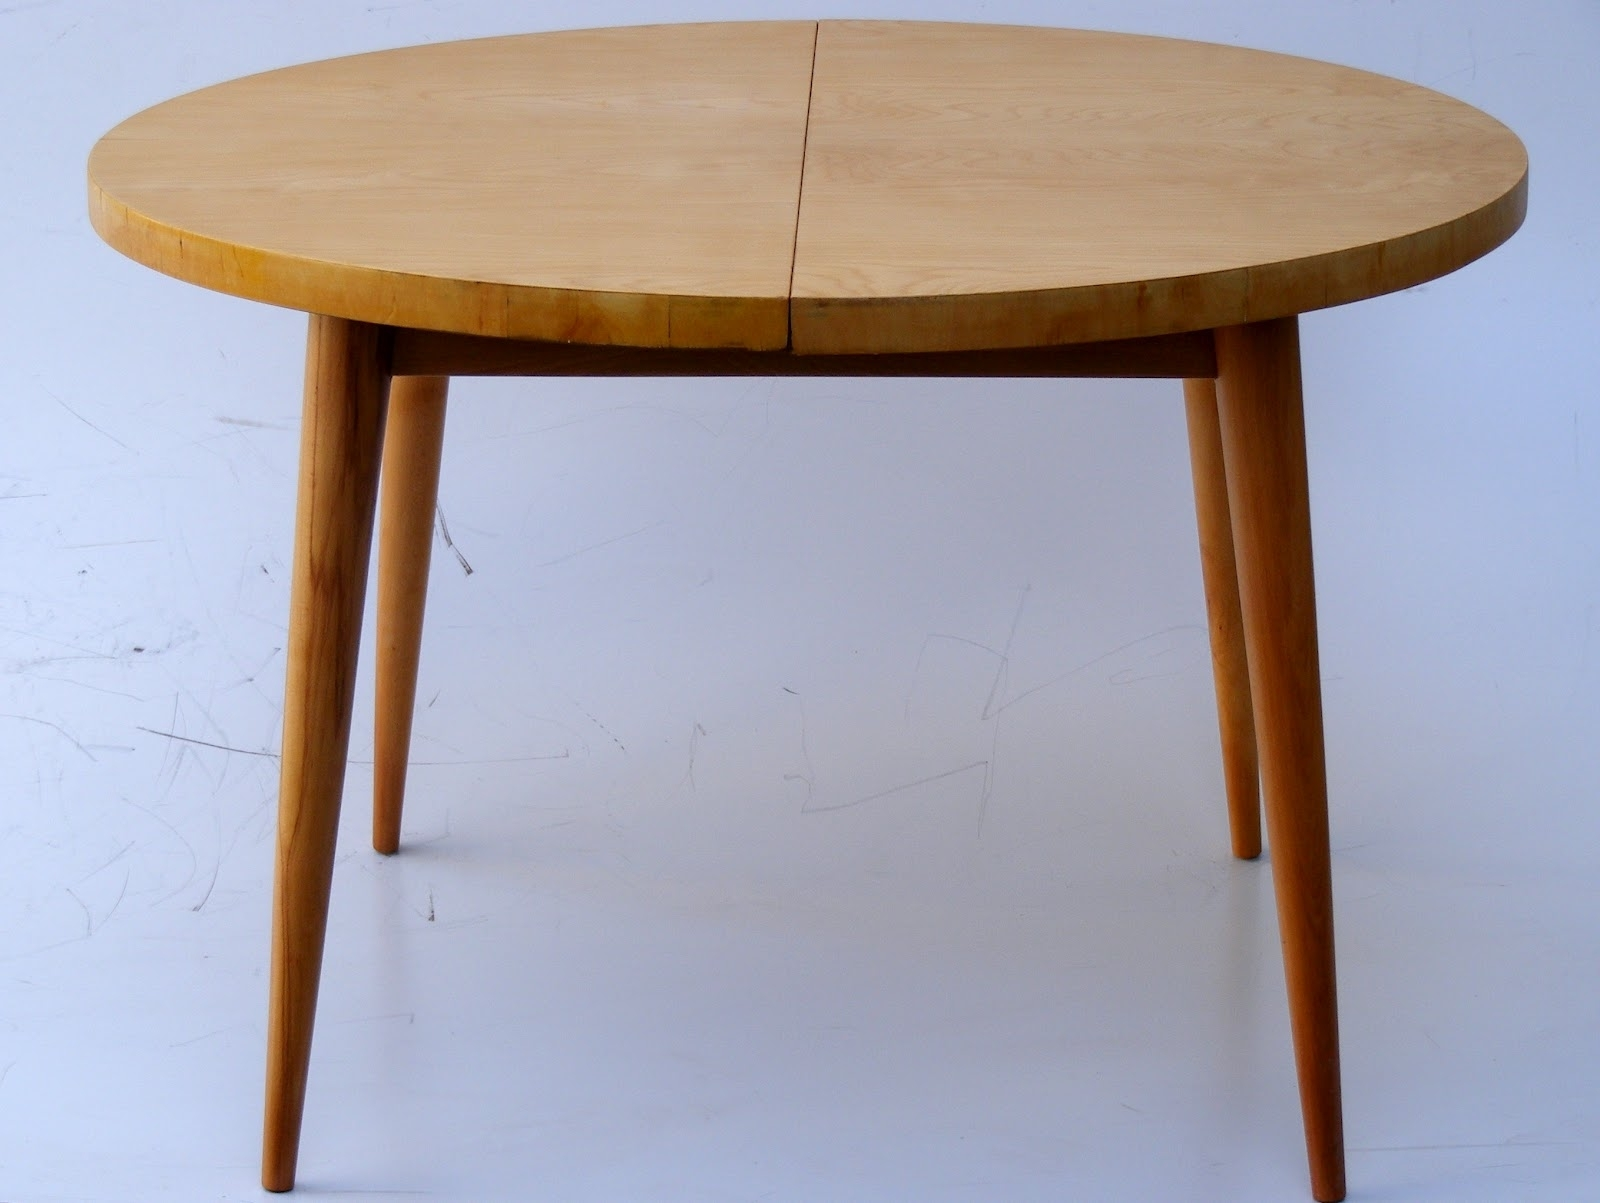 Small Round Extending Dining Tables With Favorite Dining Tables: Interesting Small Round Extending Dining Table (View 3 of 25)